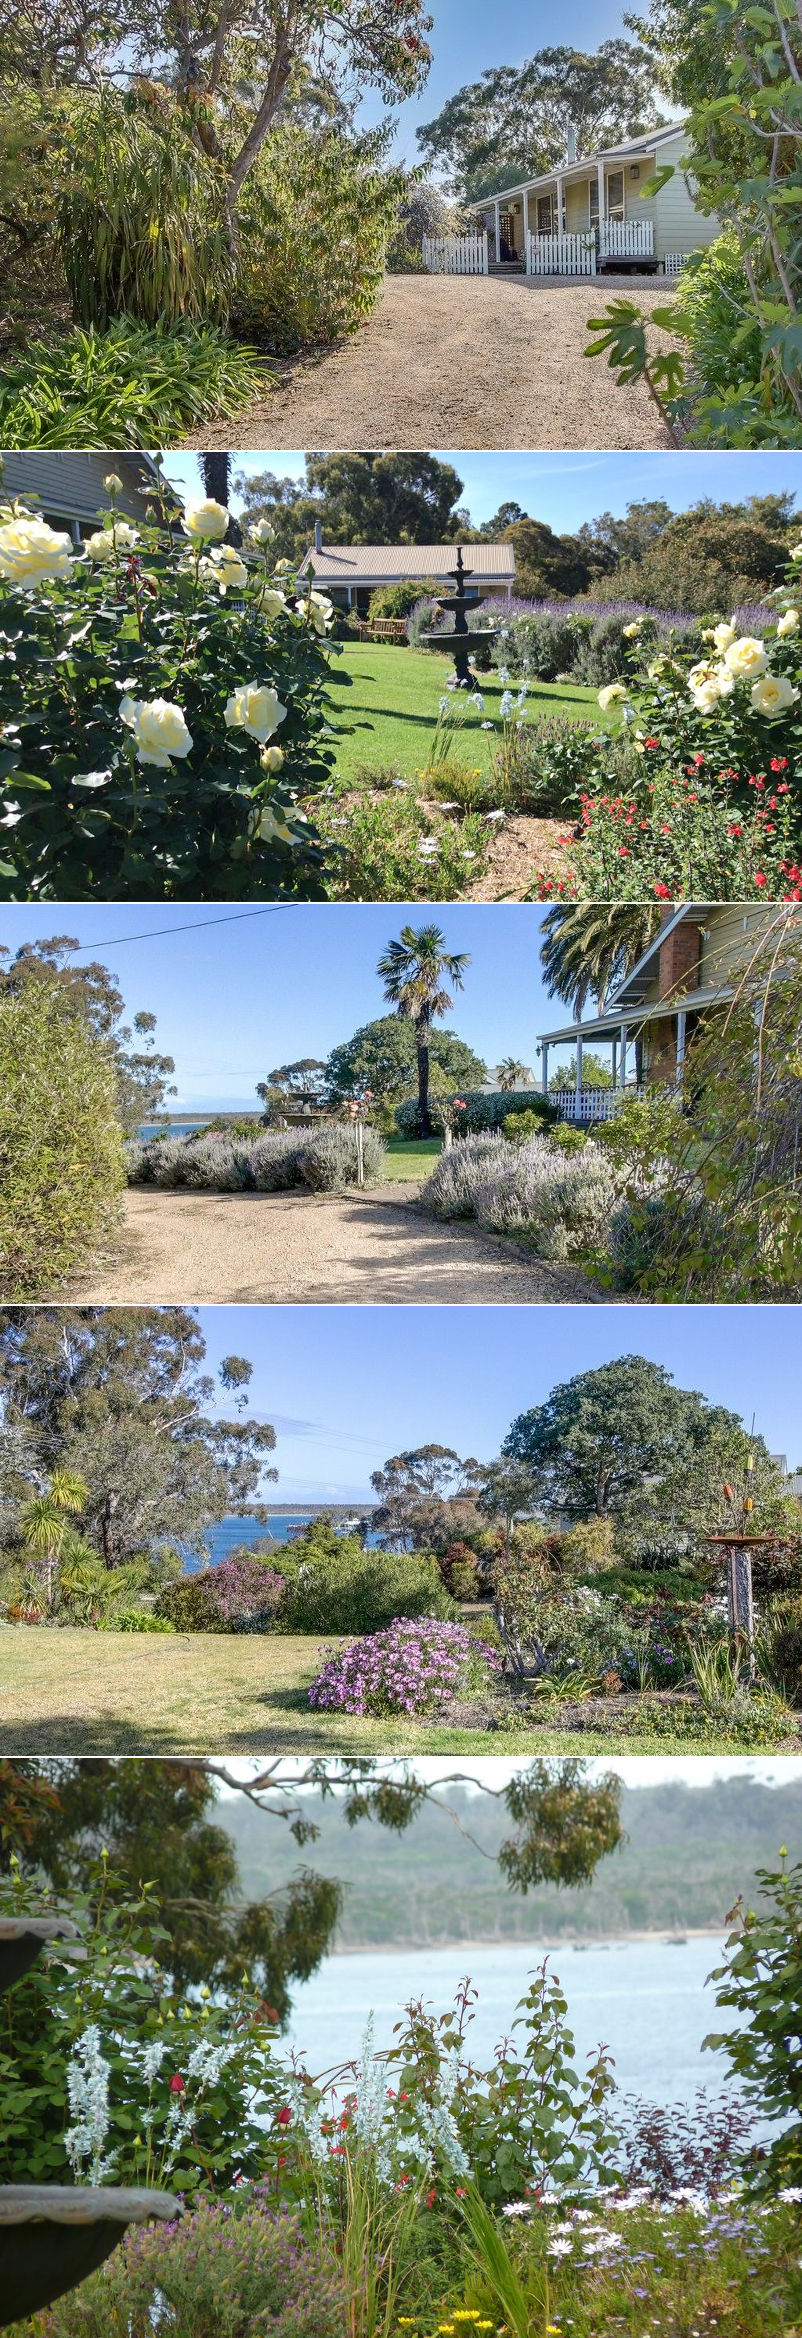 Clovelly Cottage - The grounds